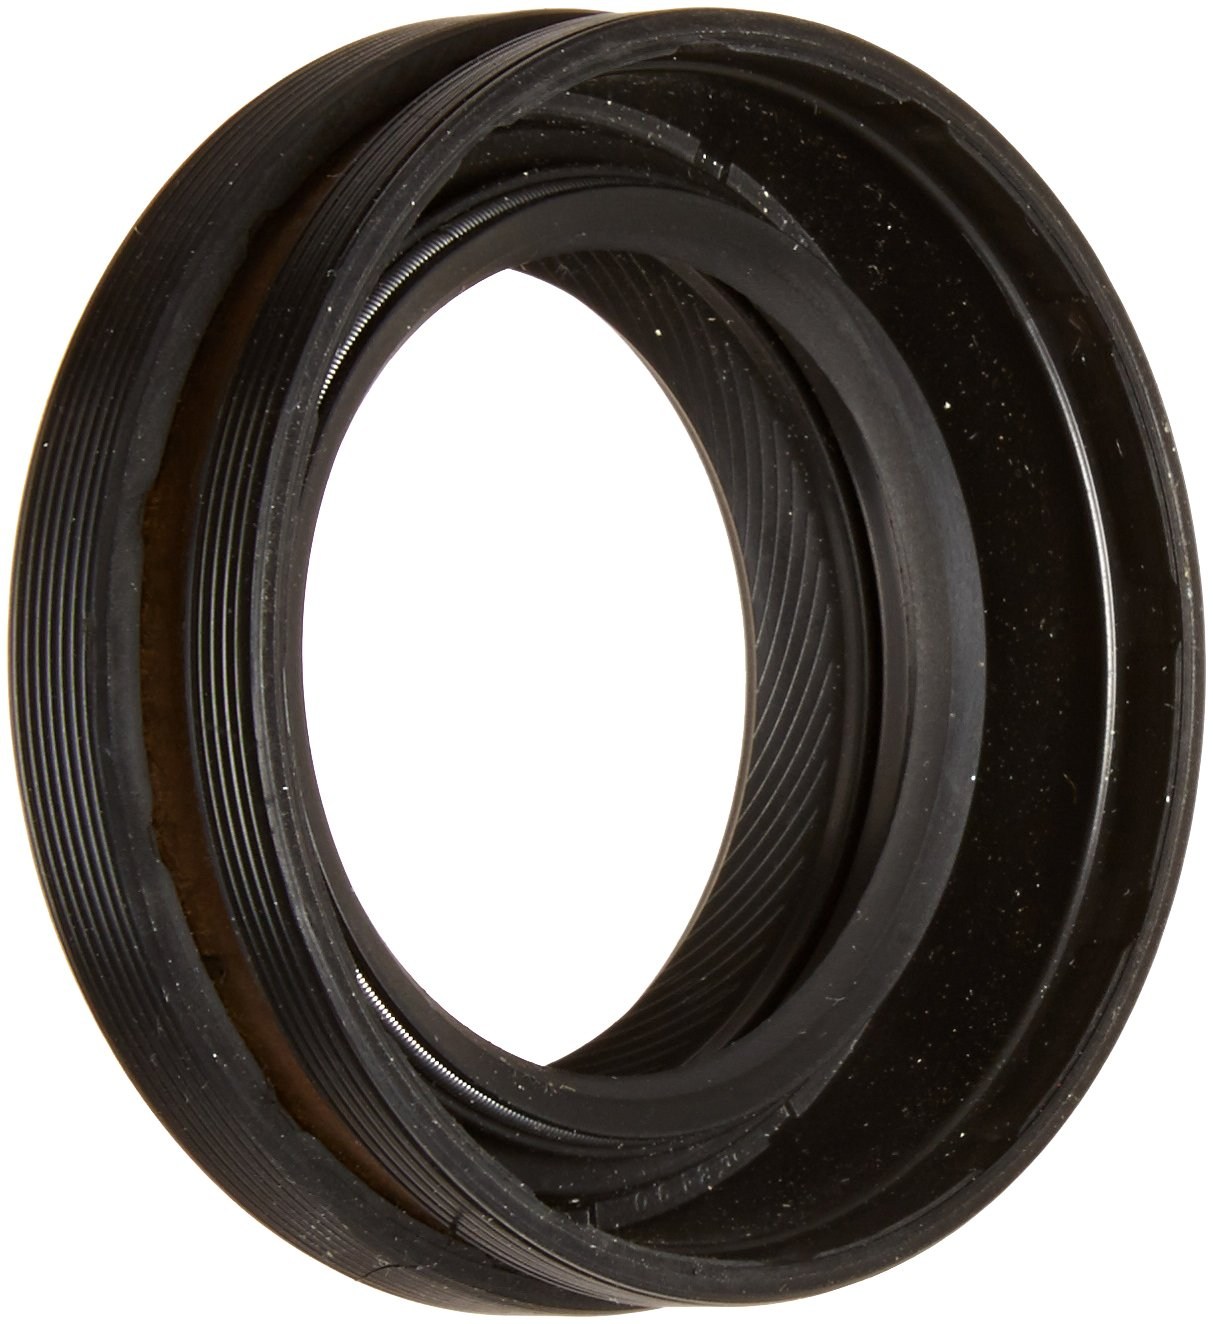 ATP SO-50 Automatic Transmission Extension Housing Seal